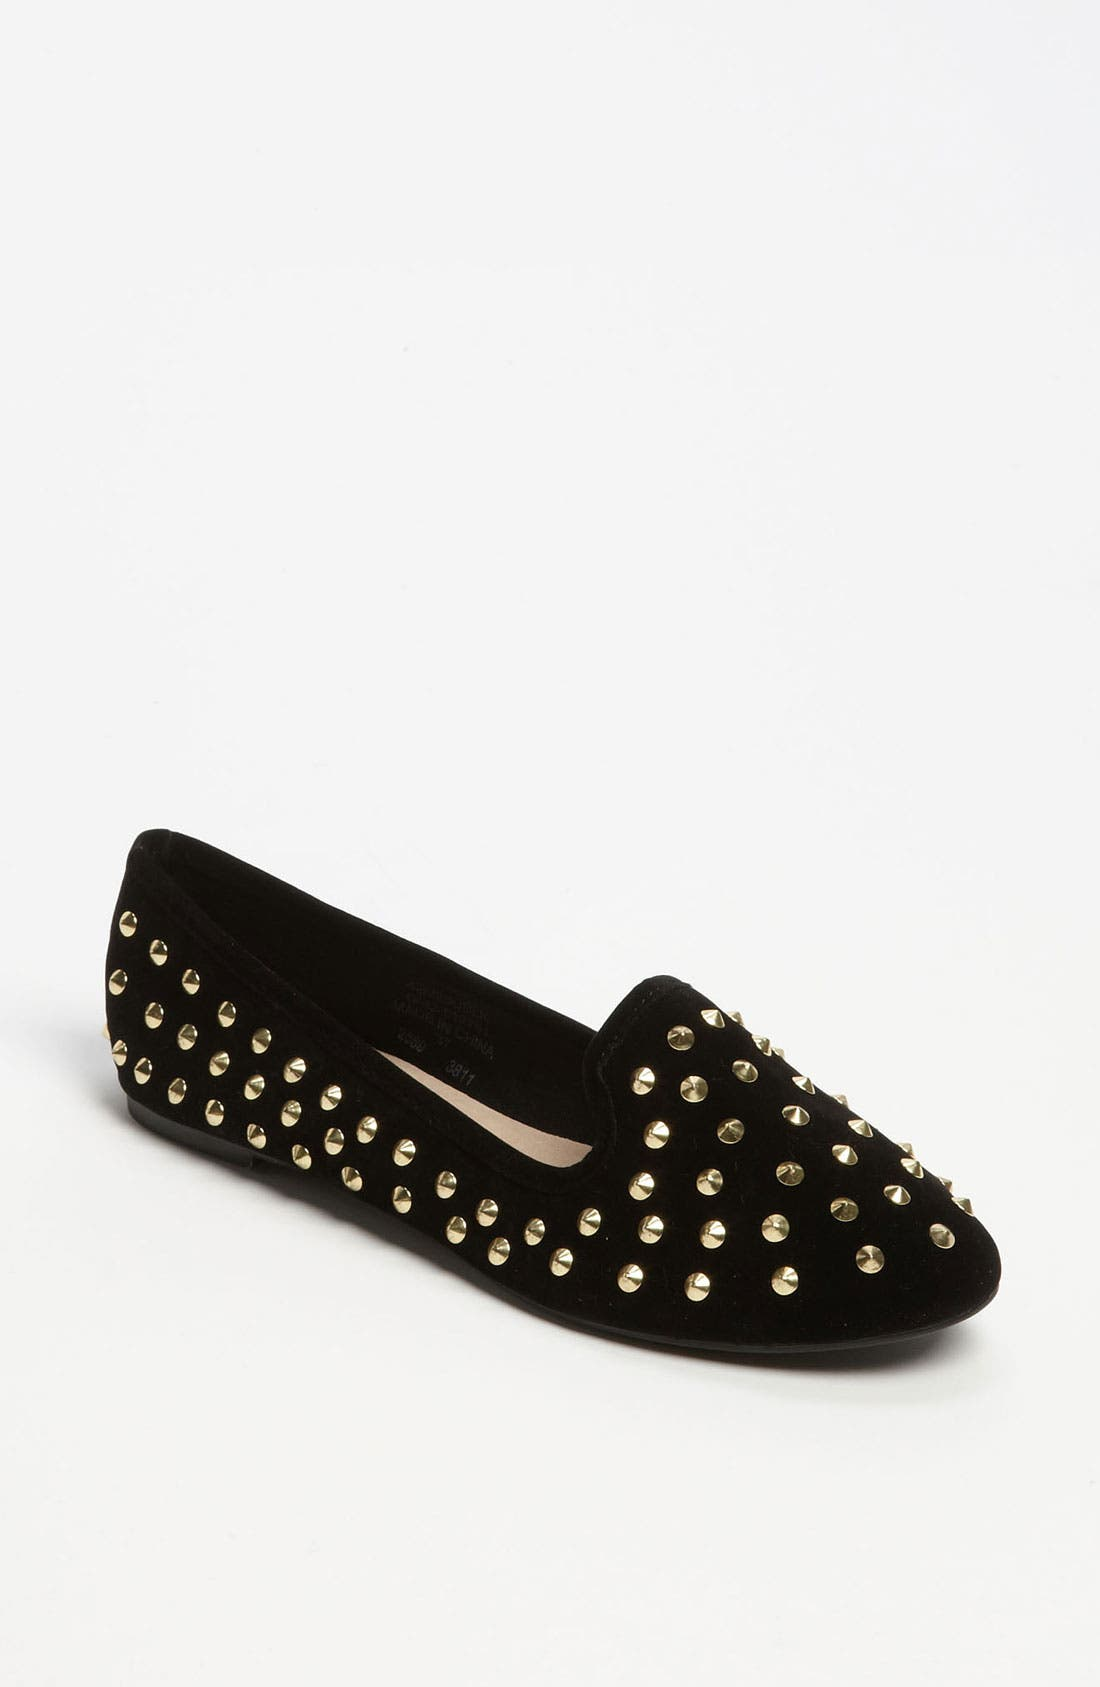 Alternate Image 1 Selected - Topshop 'Vectra' Flat